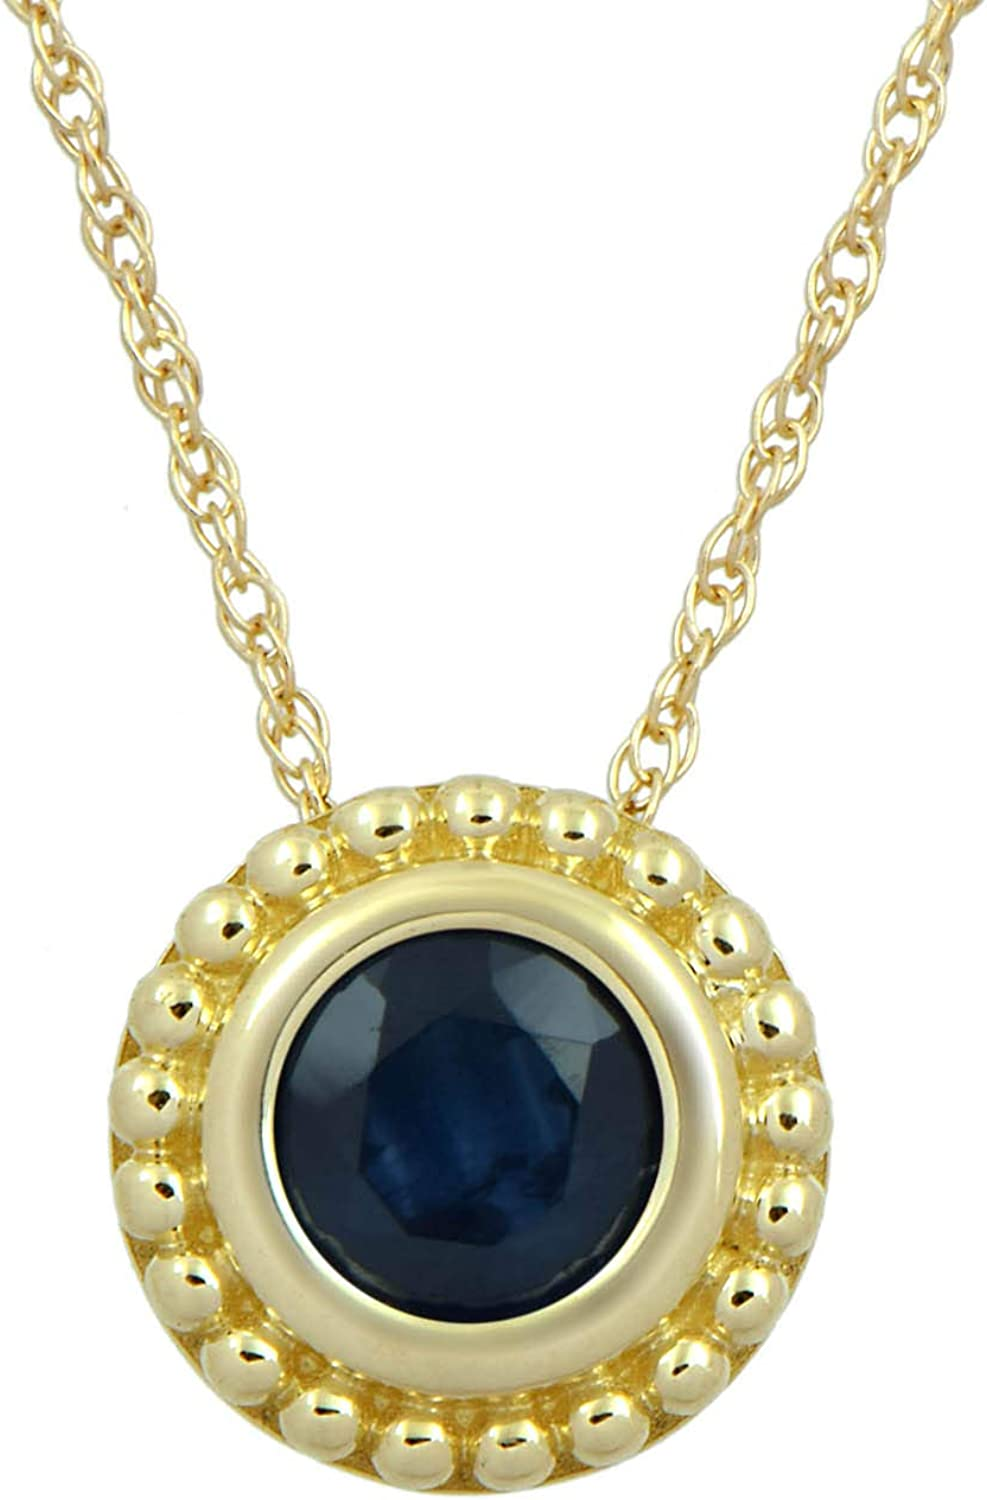 Jewelili 10K Yellow Gold 5 millimeter Blue Sapphire Pendant Necklace, 18 Inches Rope Chain